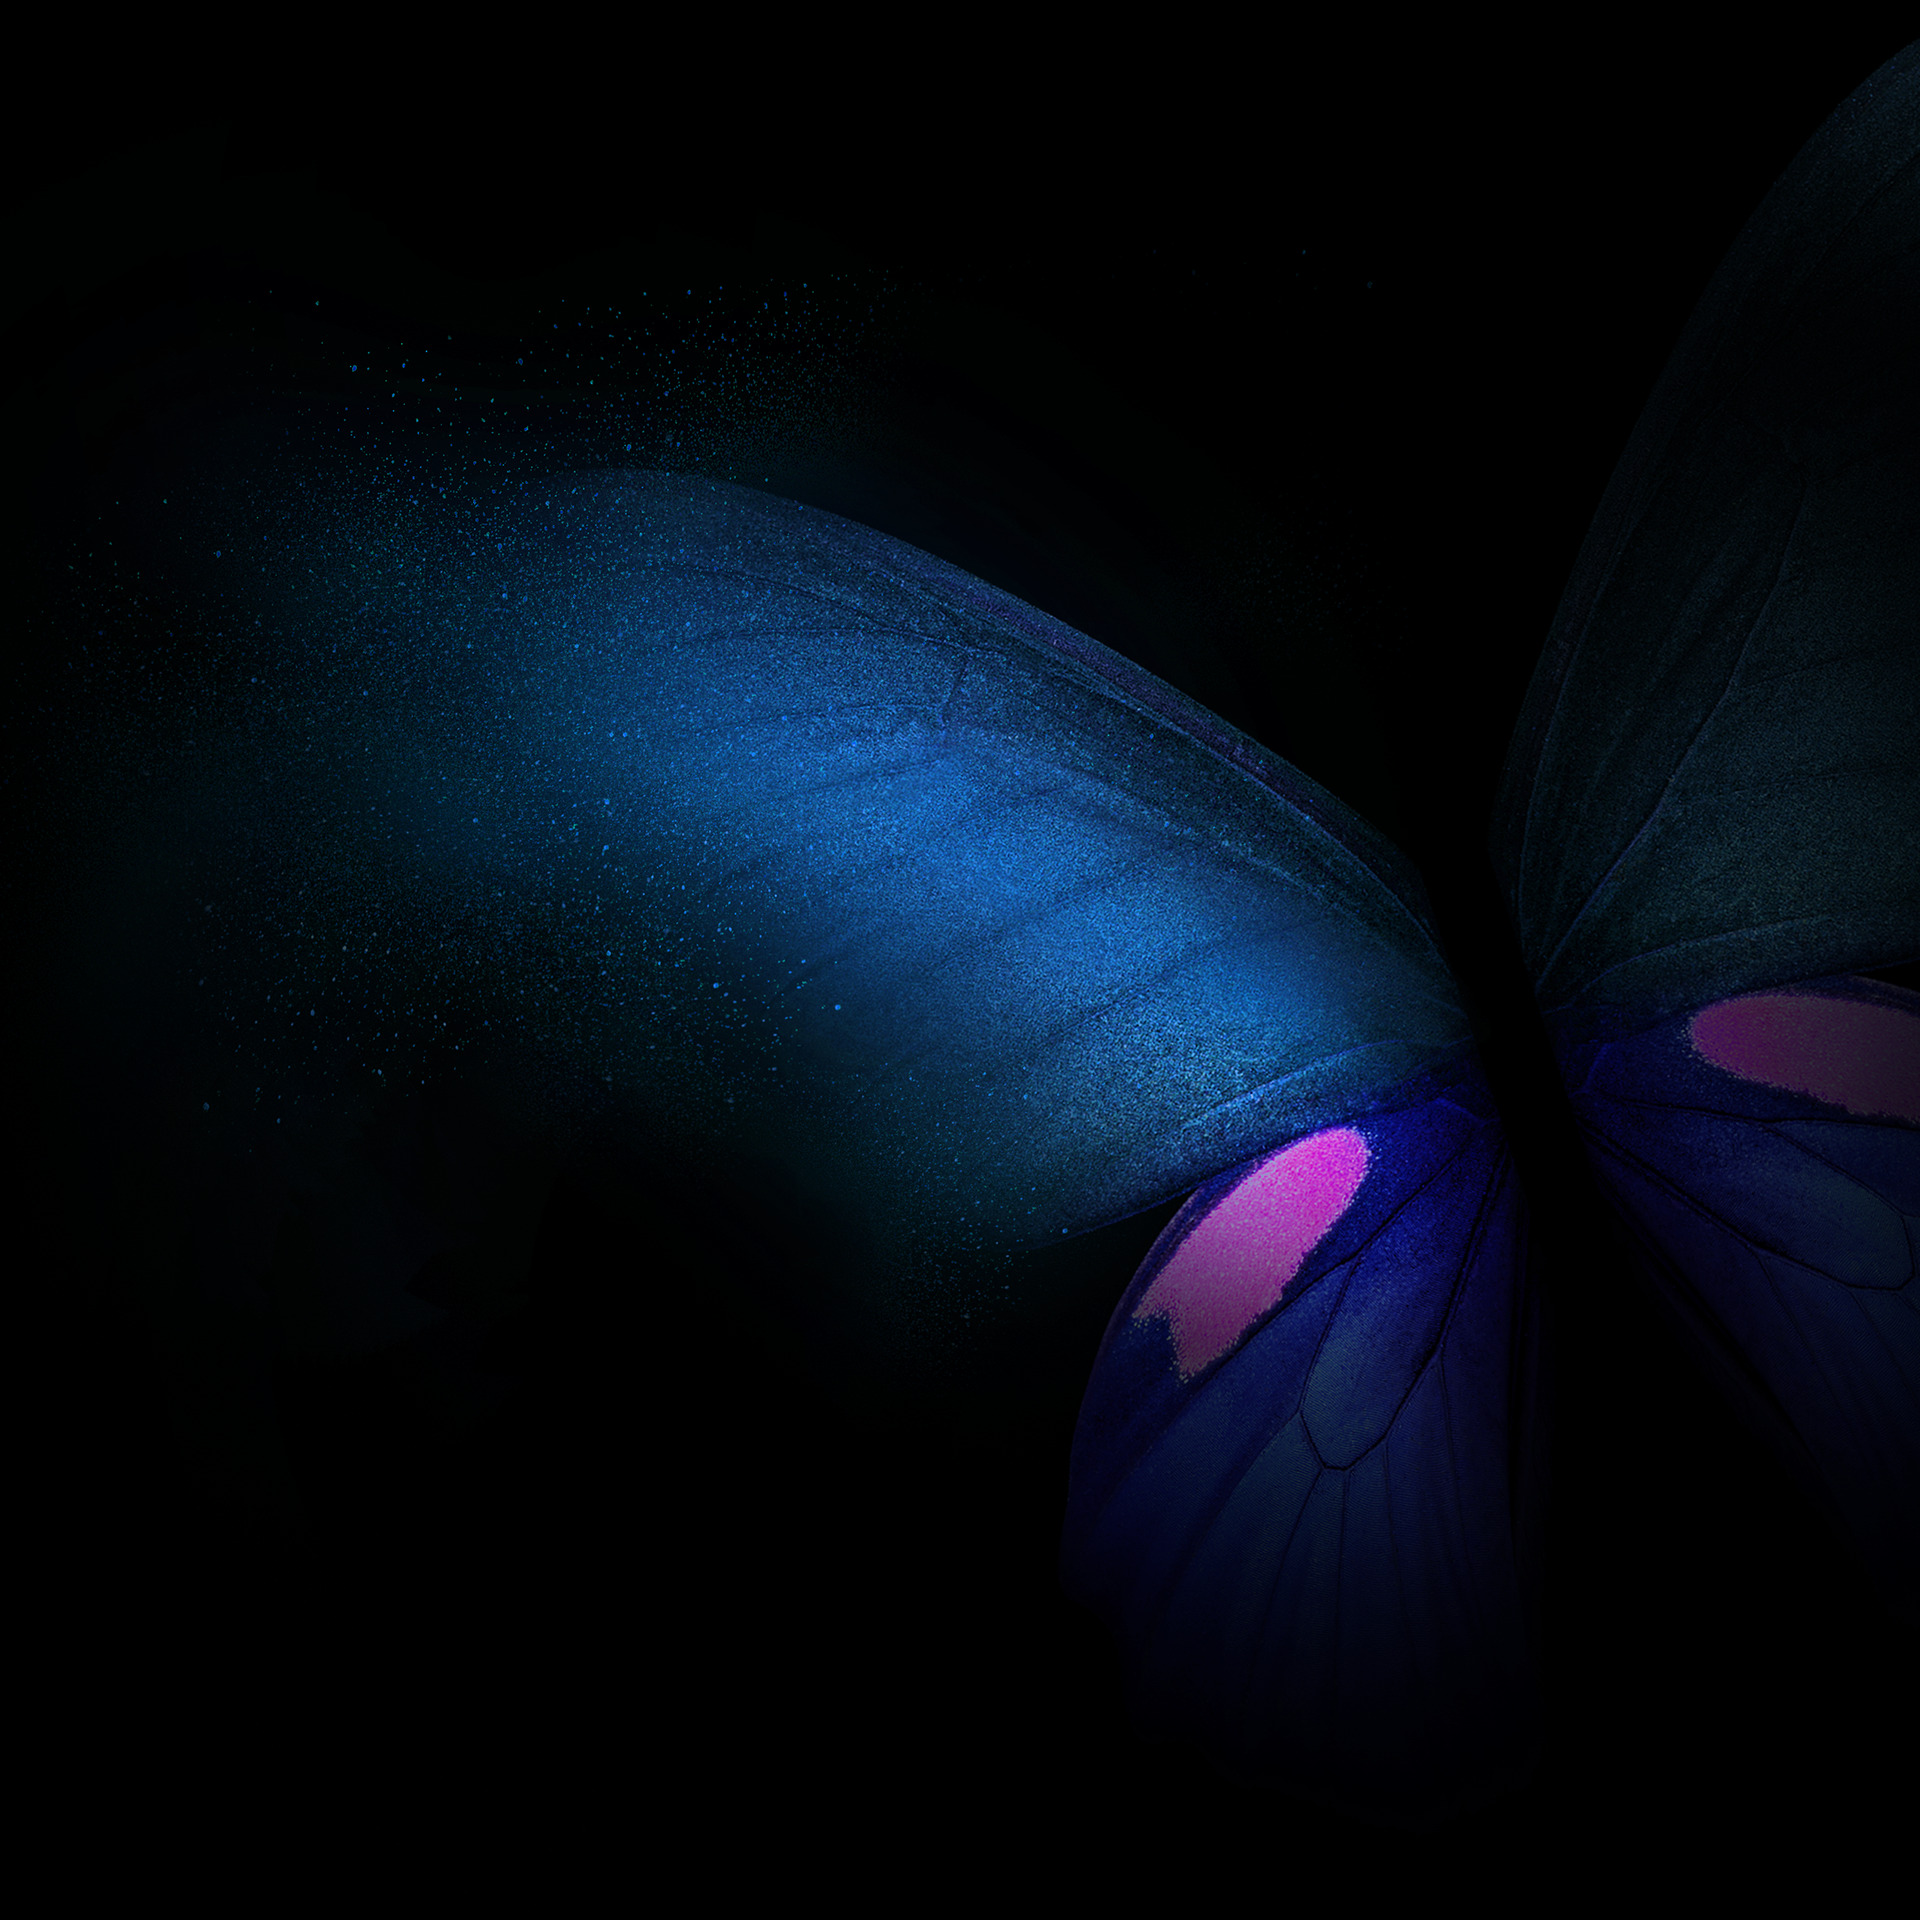 Download Samsung Galaxy Fold wallpapers in full resolution right here 1920x1920